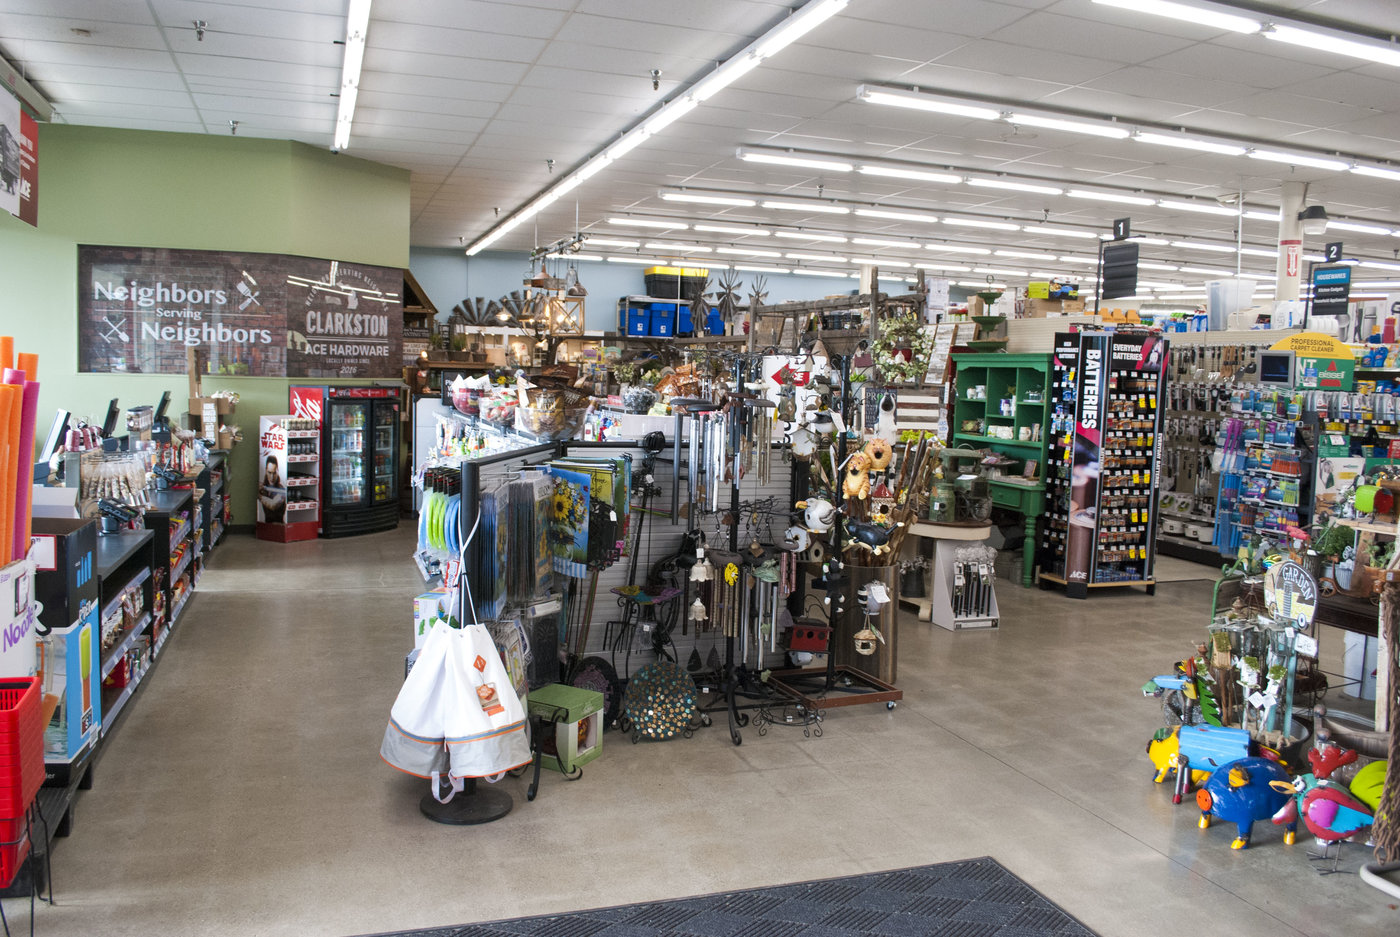 The 13,500-square-foot sales floor was completely remodeled with a new entrance, new checkouts, extended fixtures, barnwood accents on the walls and new LED lights.